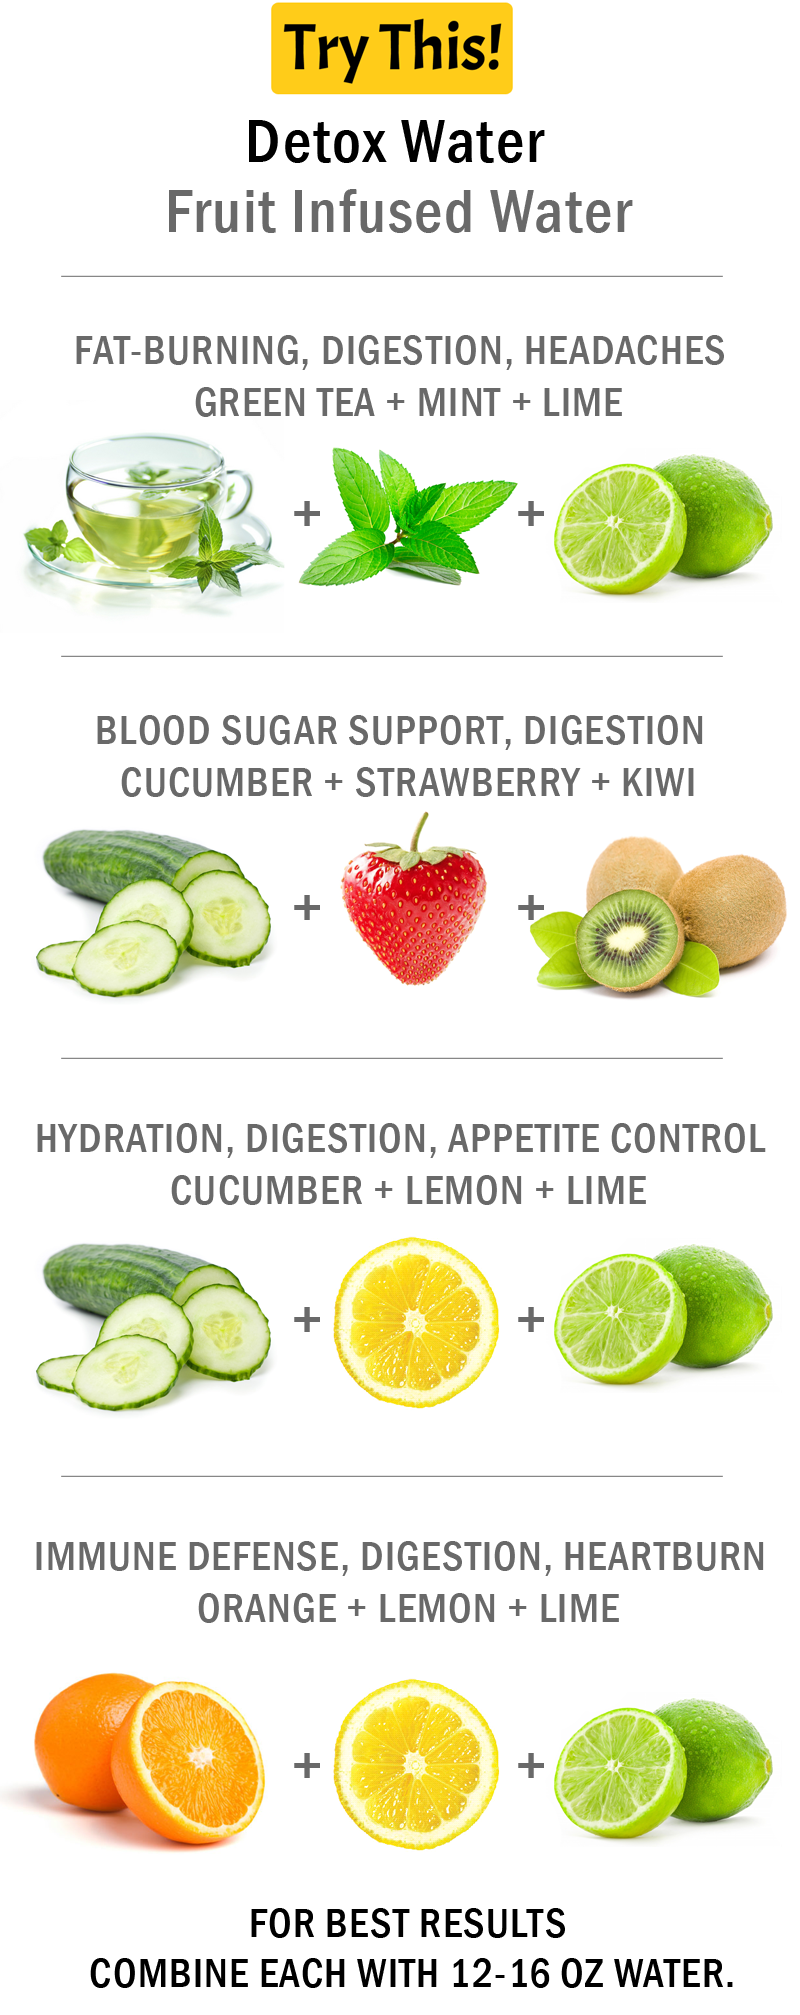 Detox Water: Top 50 Fruit Infused Water Recipes - Health Tips - Try This!